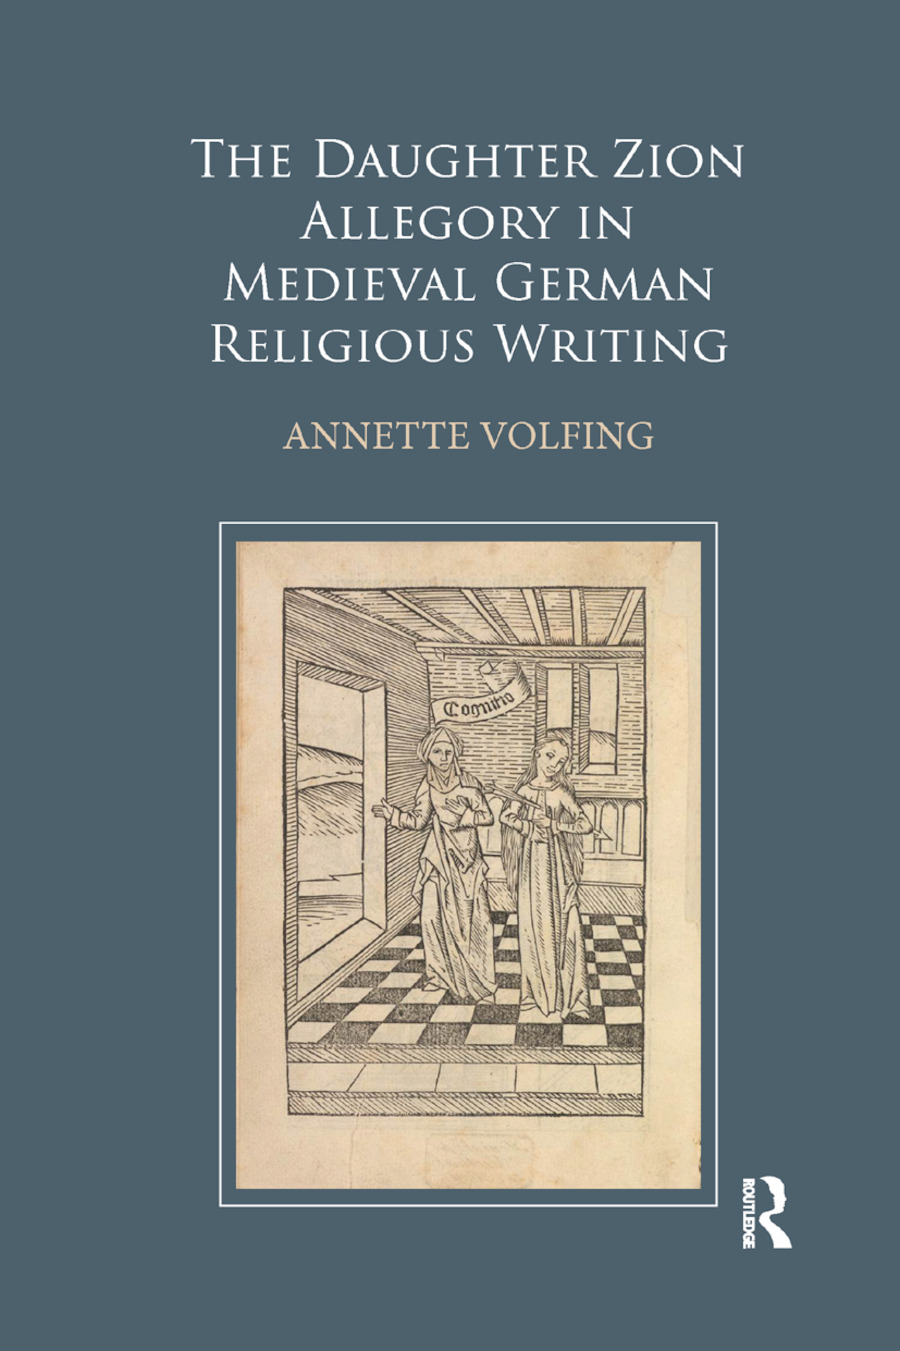 The Daughter Zion Allegory in Medieval German Religious Writing book cover